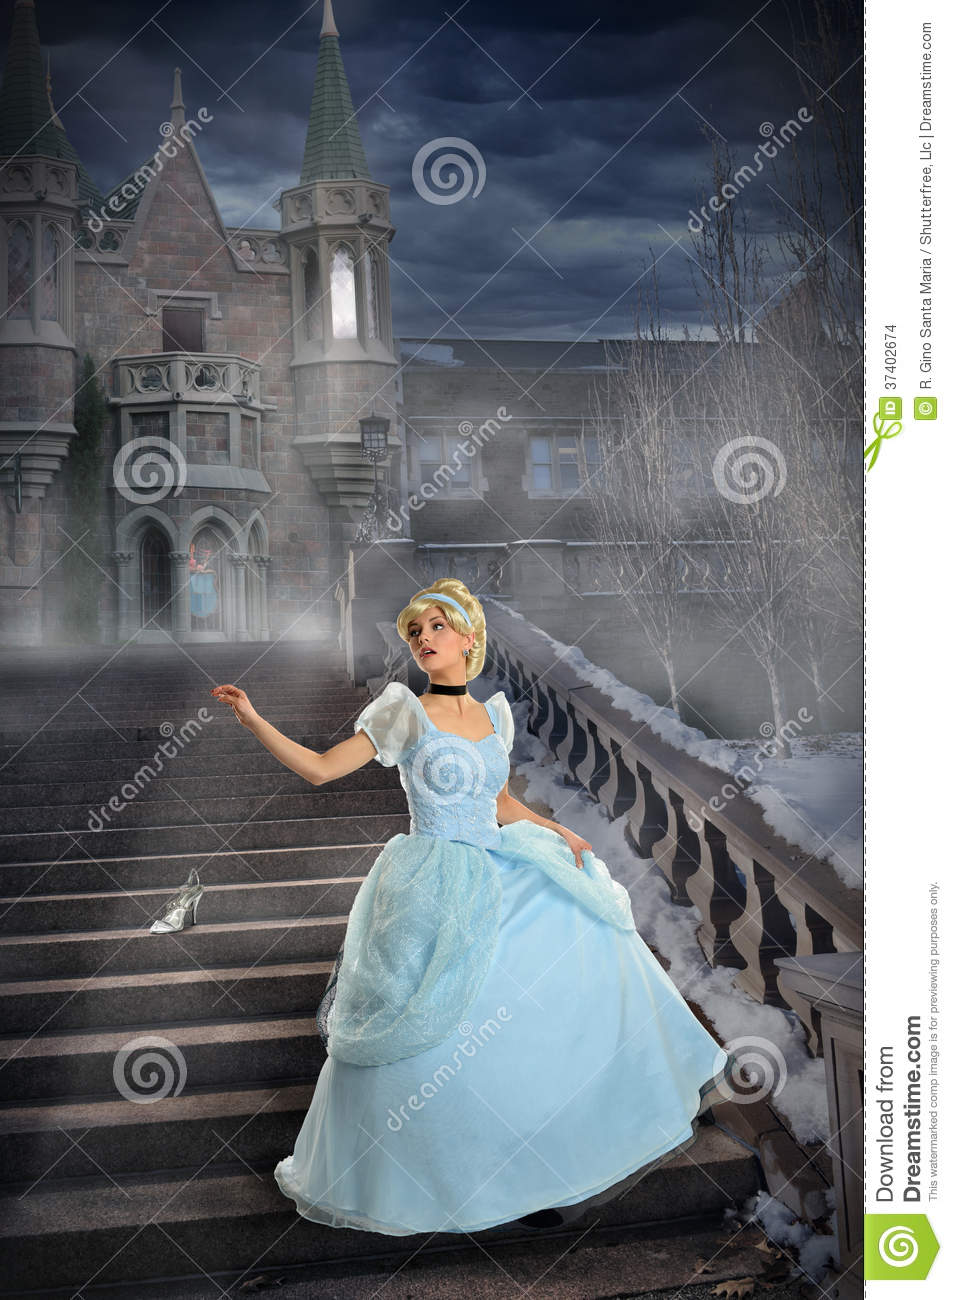 Young Princess Losing Shoe on Stairs